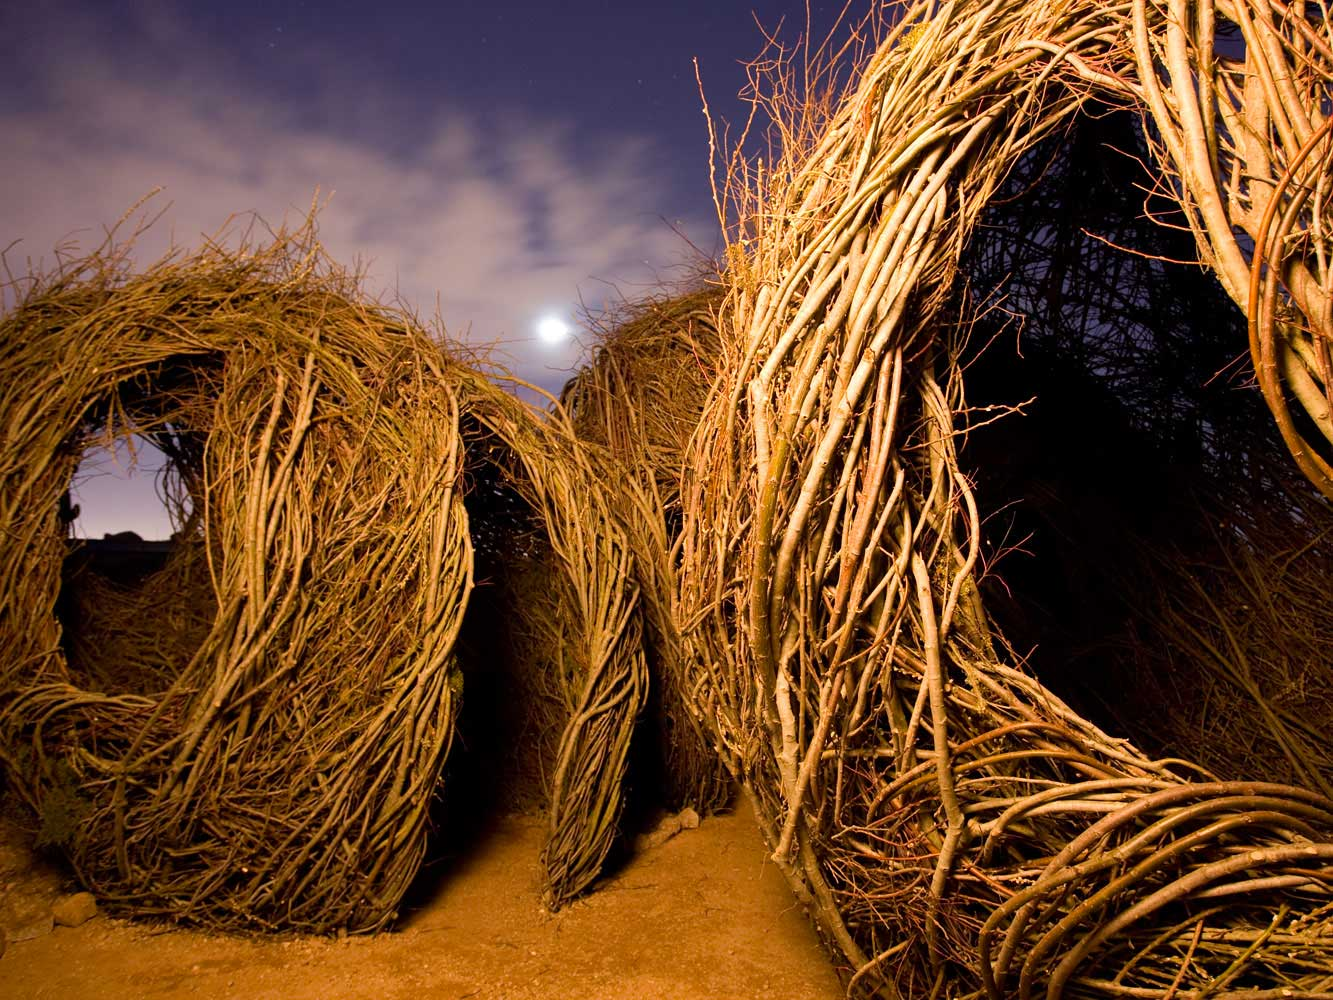 Childhood Dreams, Patrick Dougherty